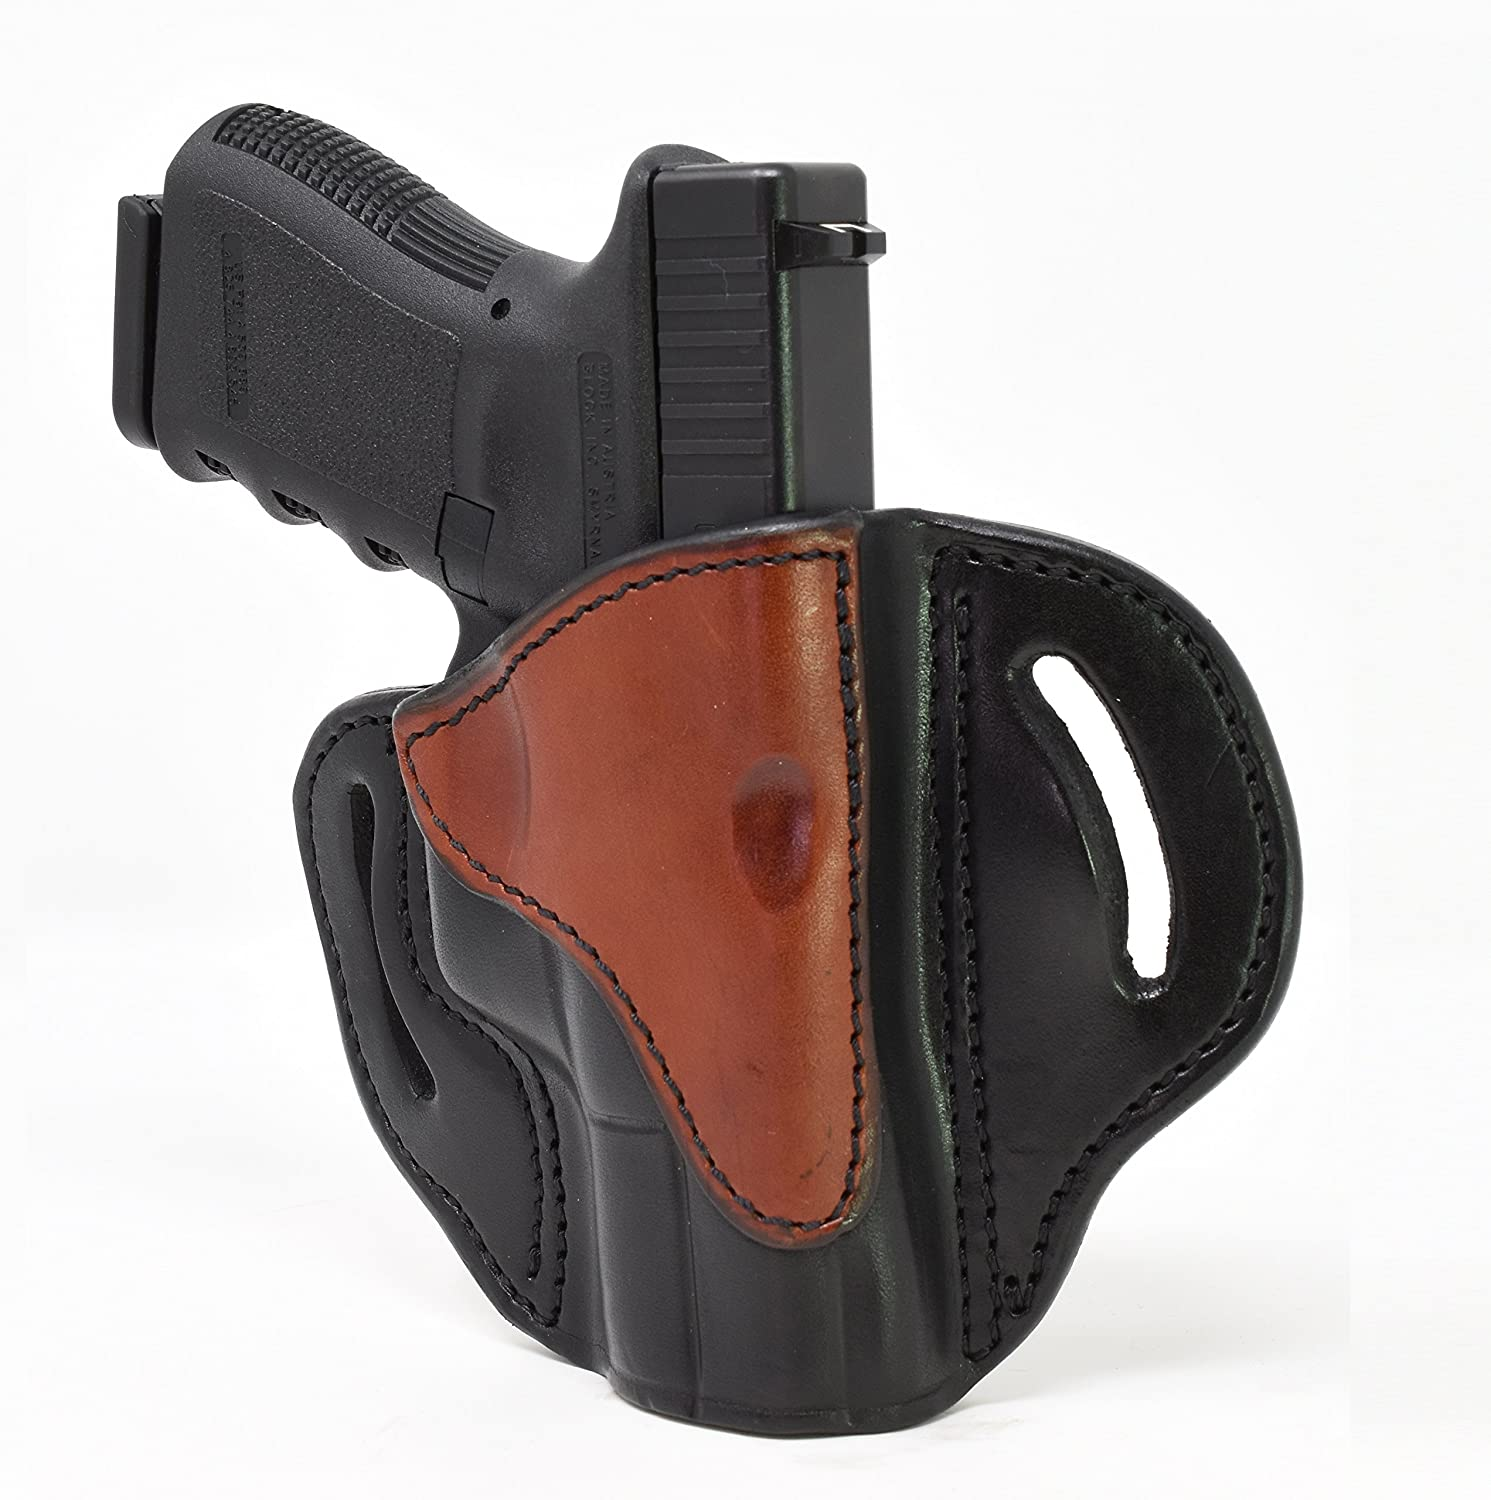 The 1791 Gunleather Glock 19 Holster